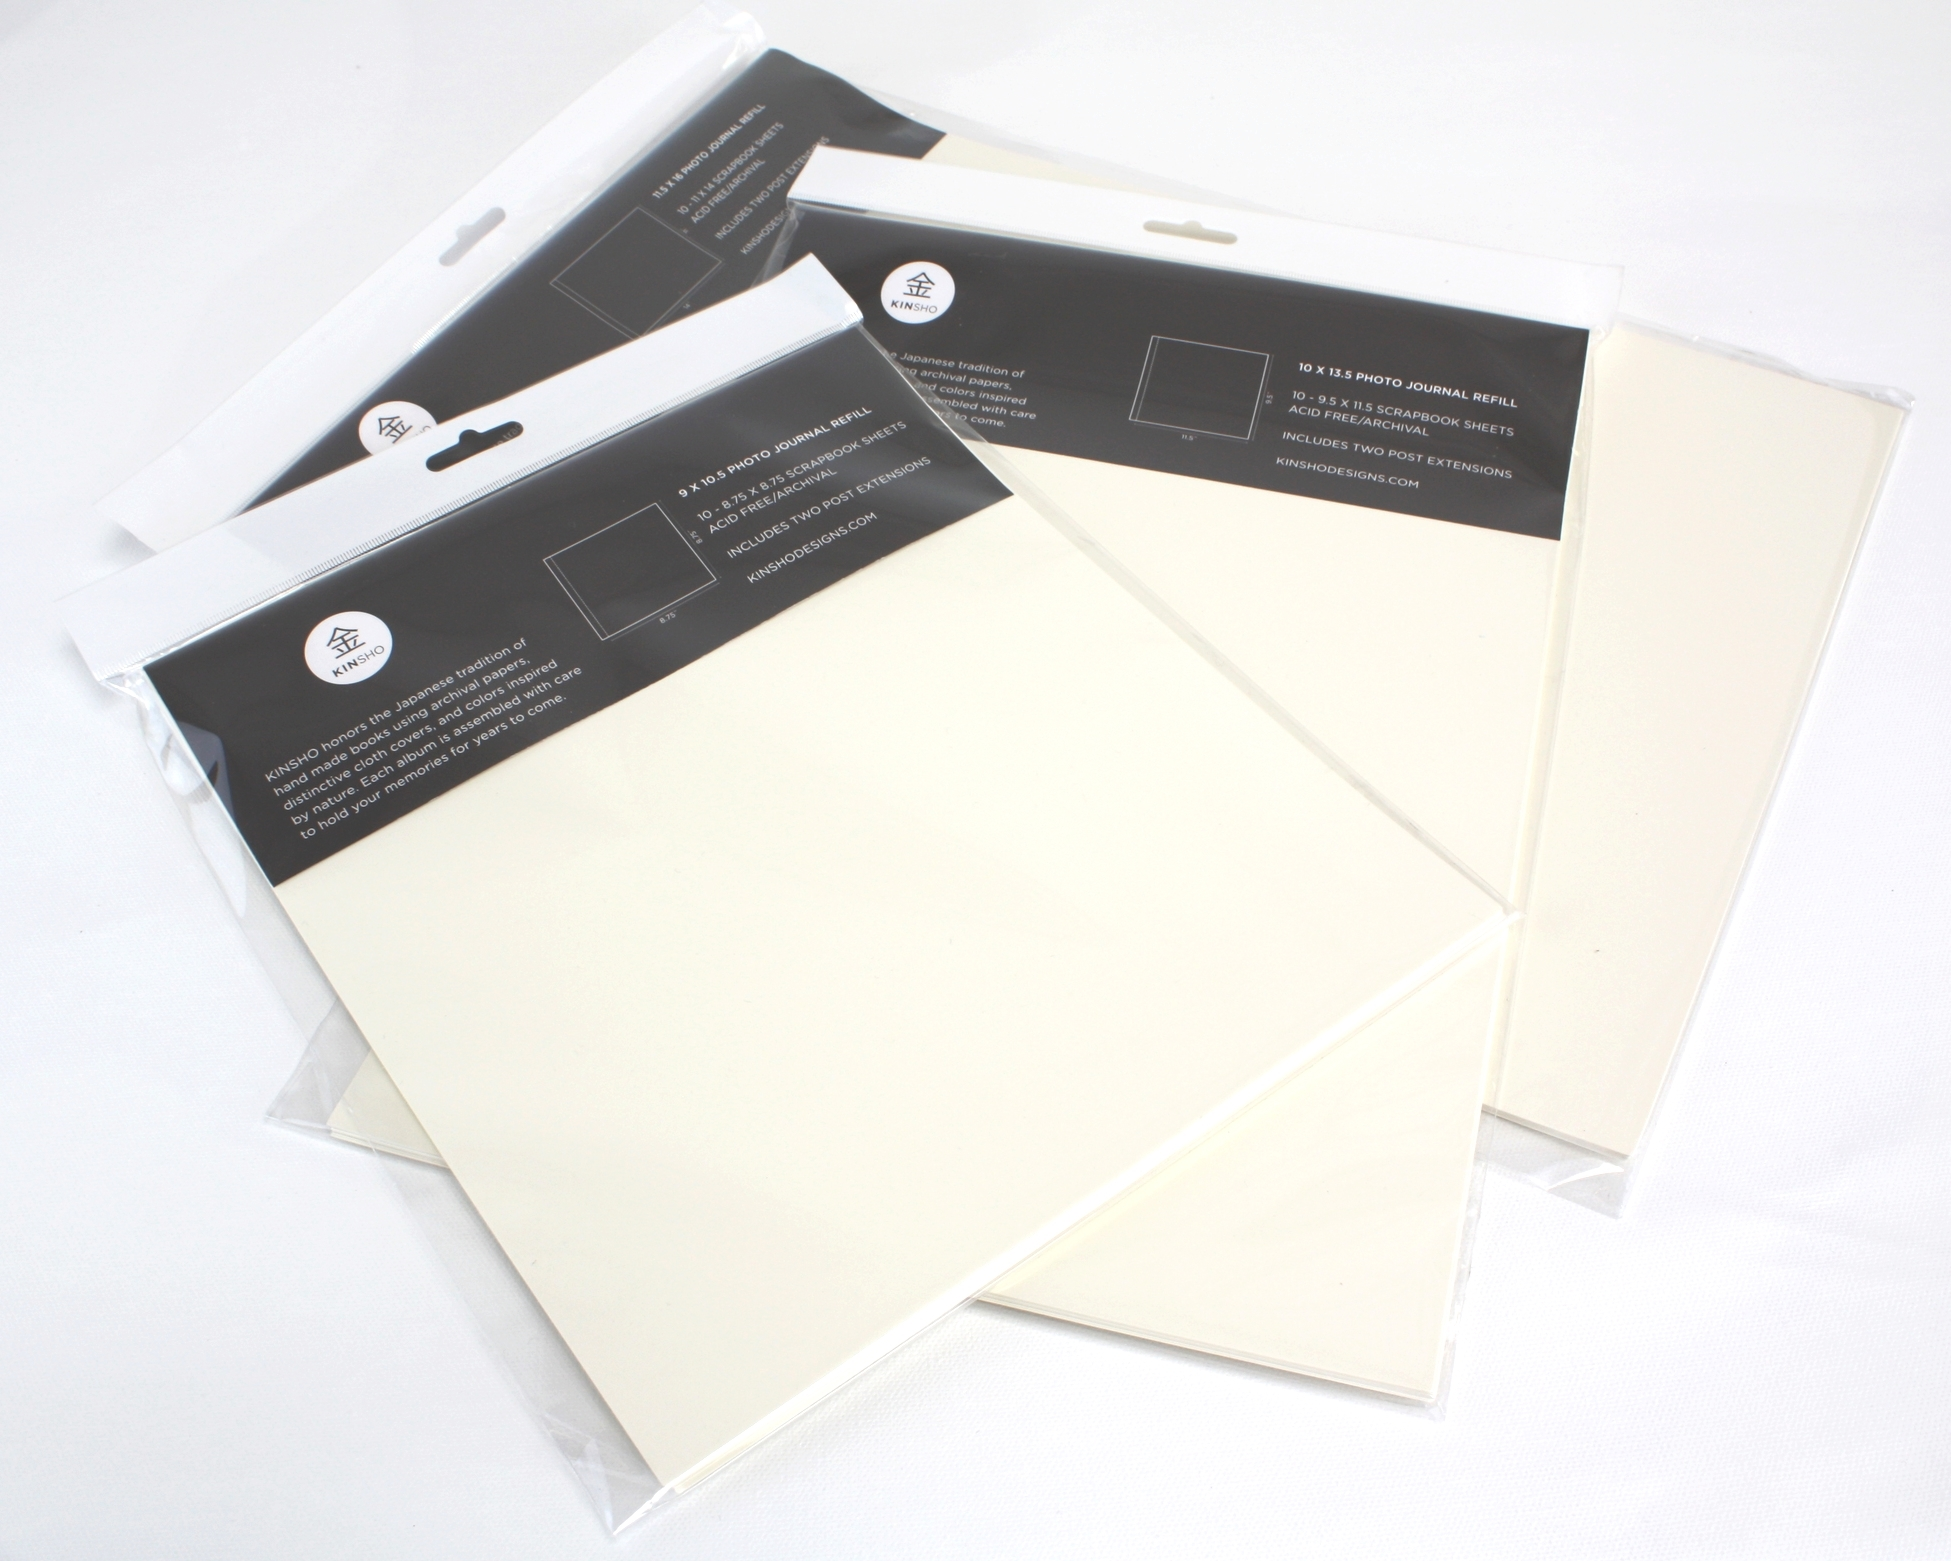 How to refill scrapbook pages - Refillpage Group Jpg